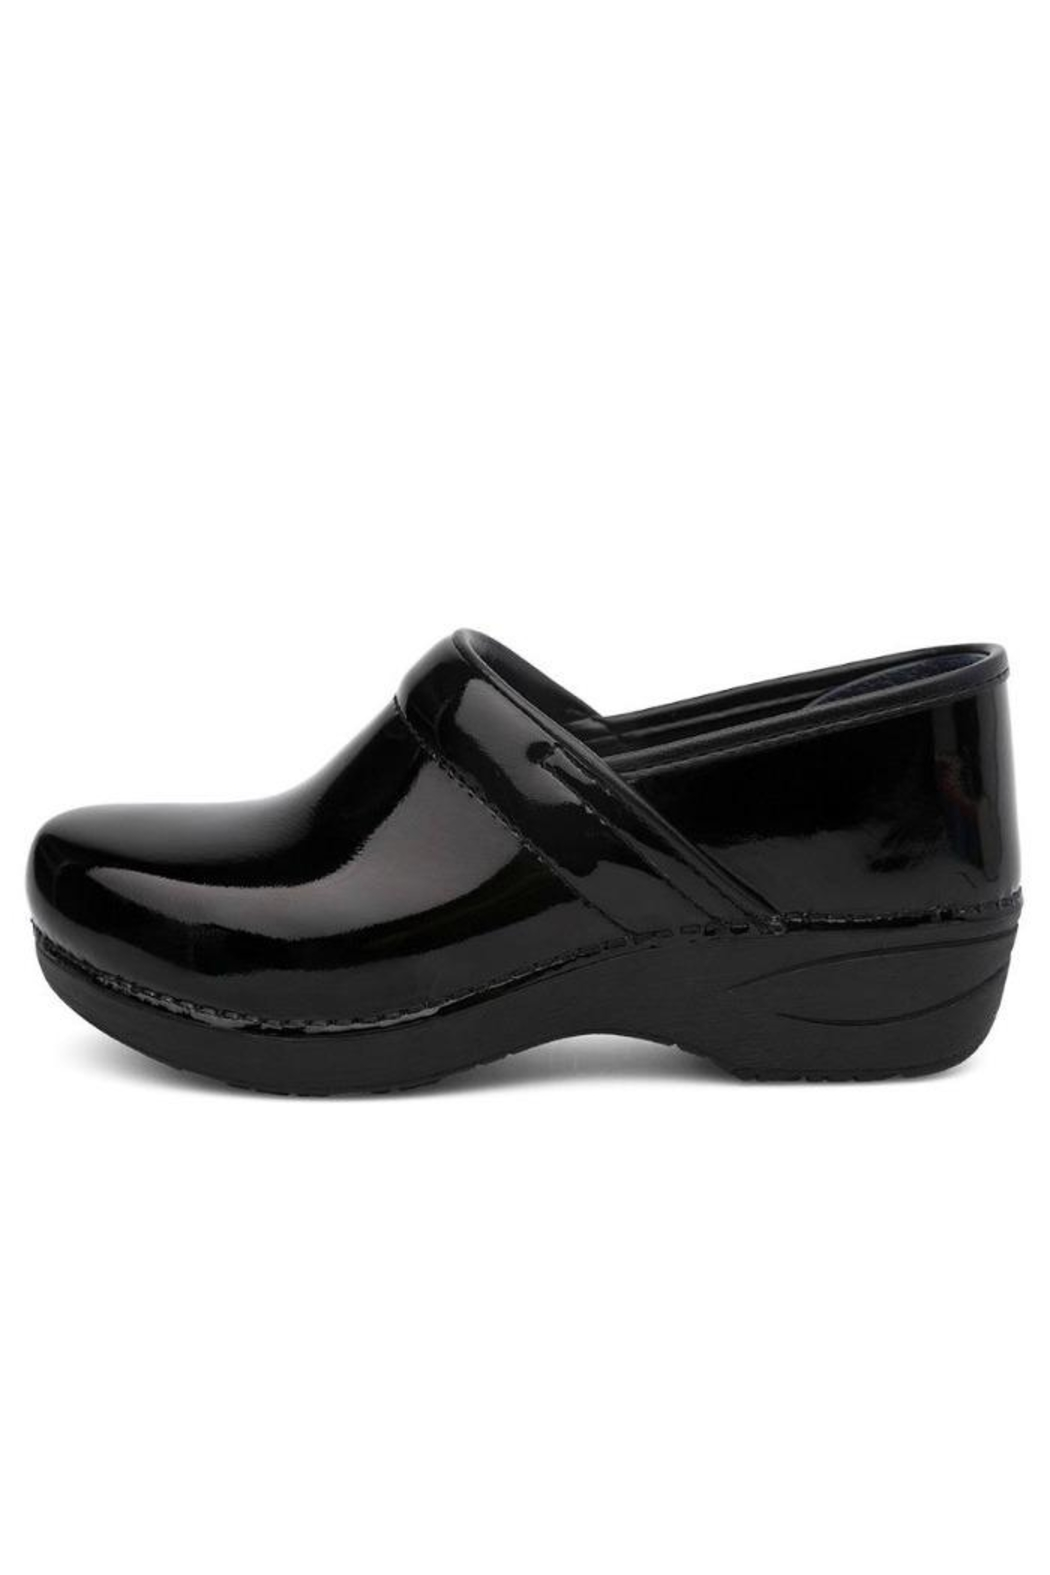 Dansko Xp2.0 Clogs - Front Cropped Image